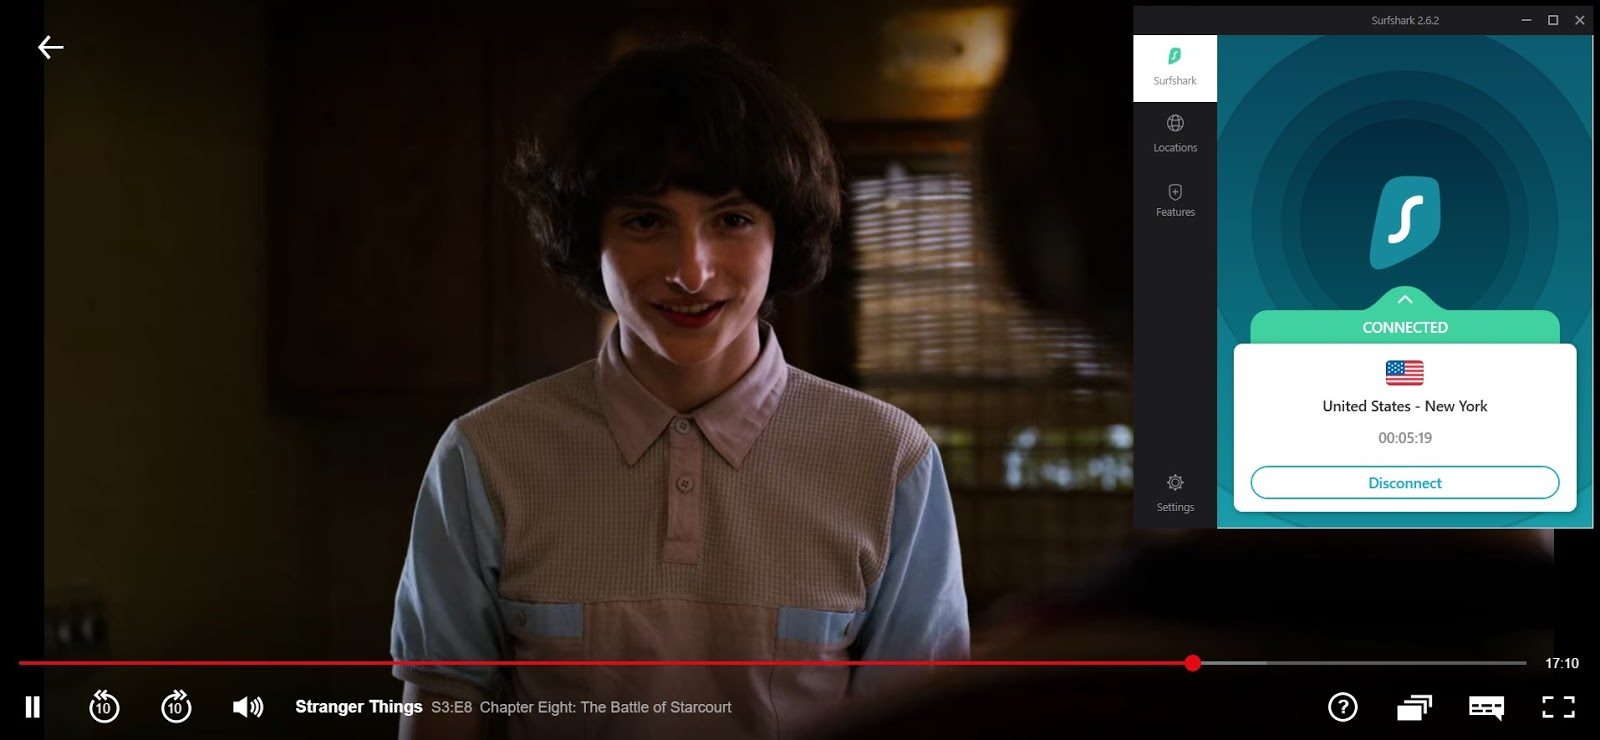 Screenshot of Surfshark connected to US server with Stranger Things streaming on US Netflix